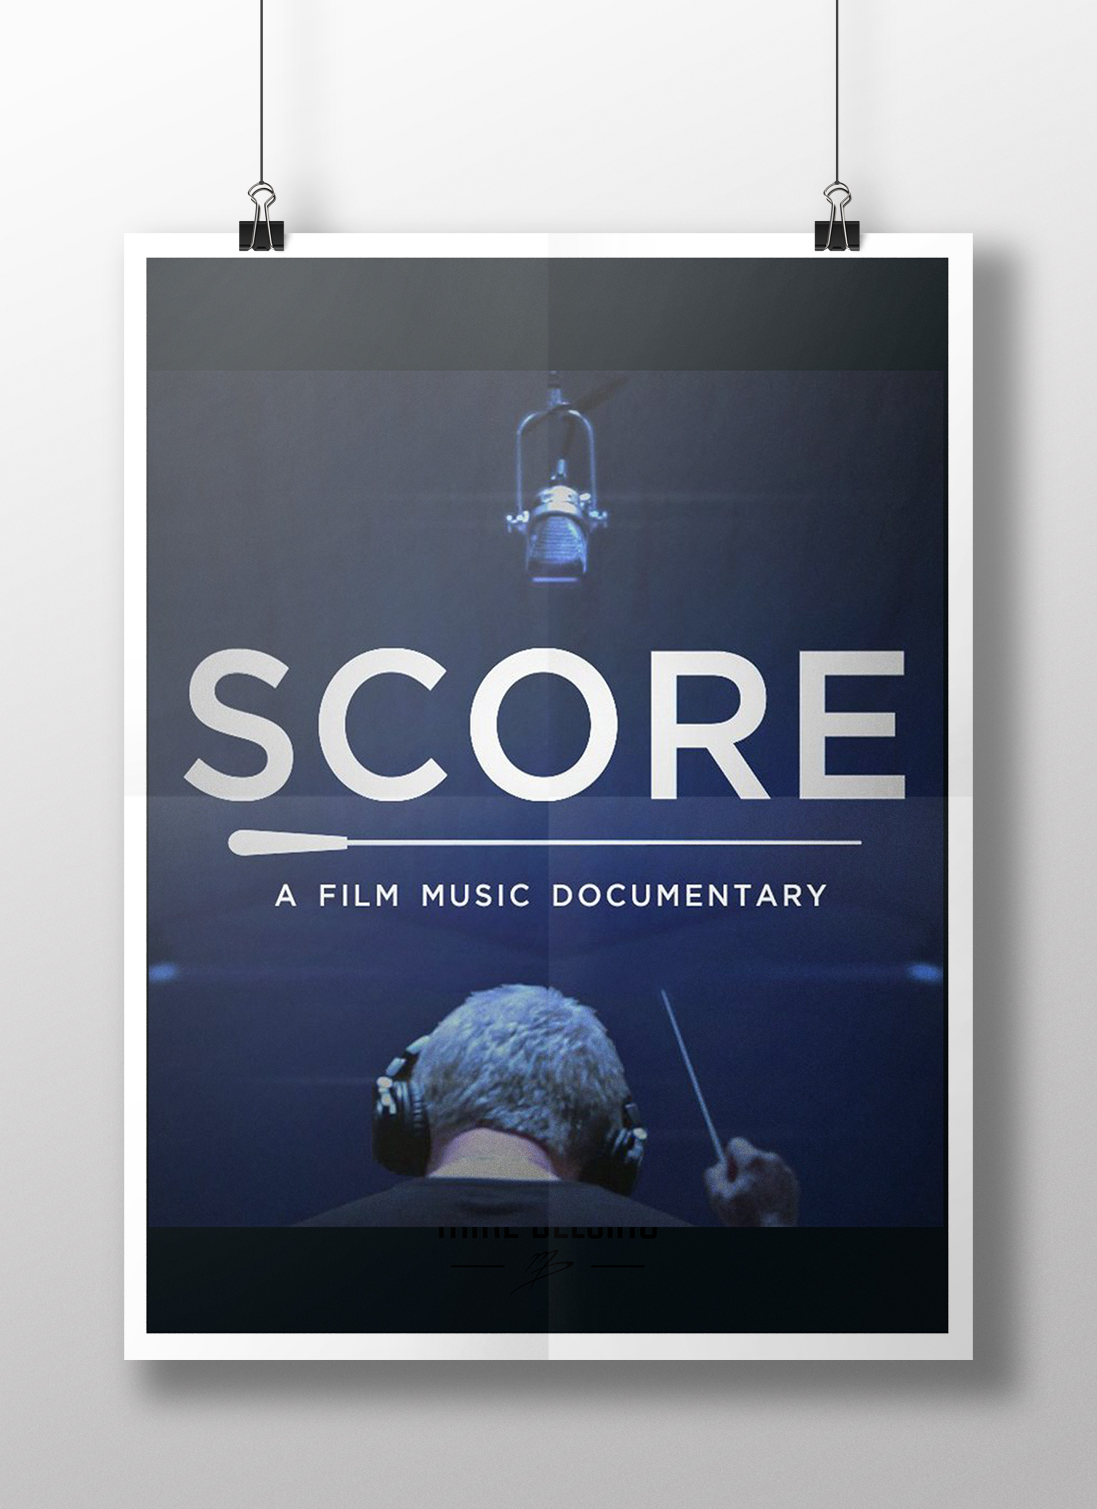 Know the Score A Brief History of Film Music